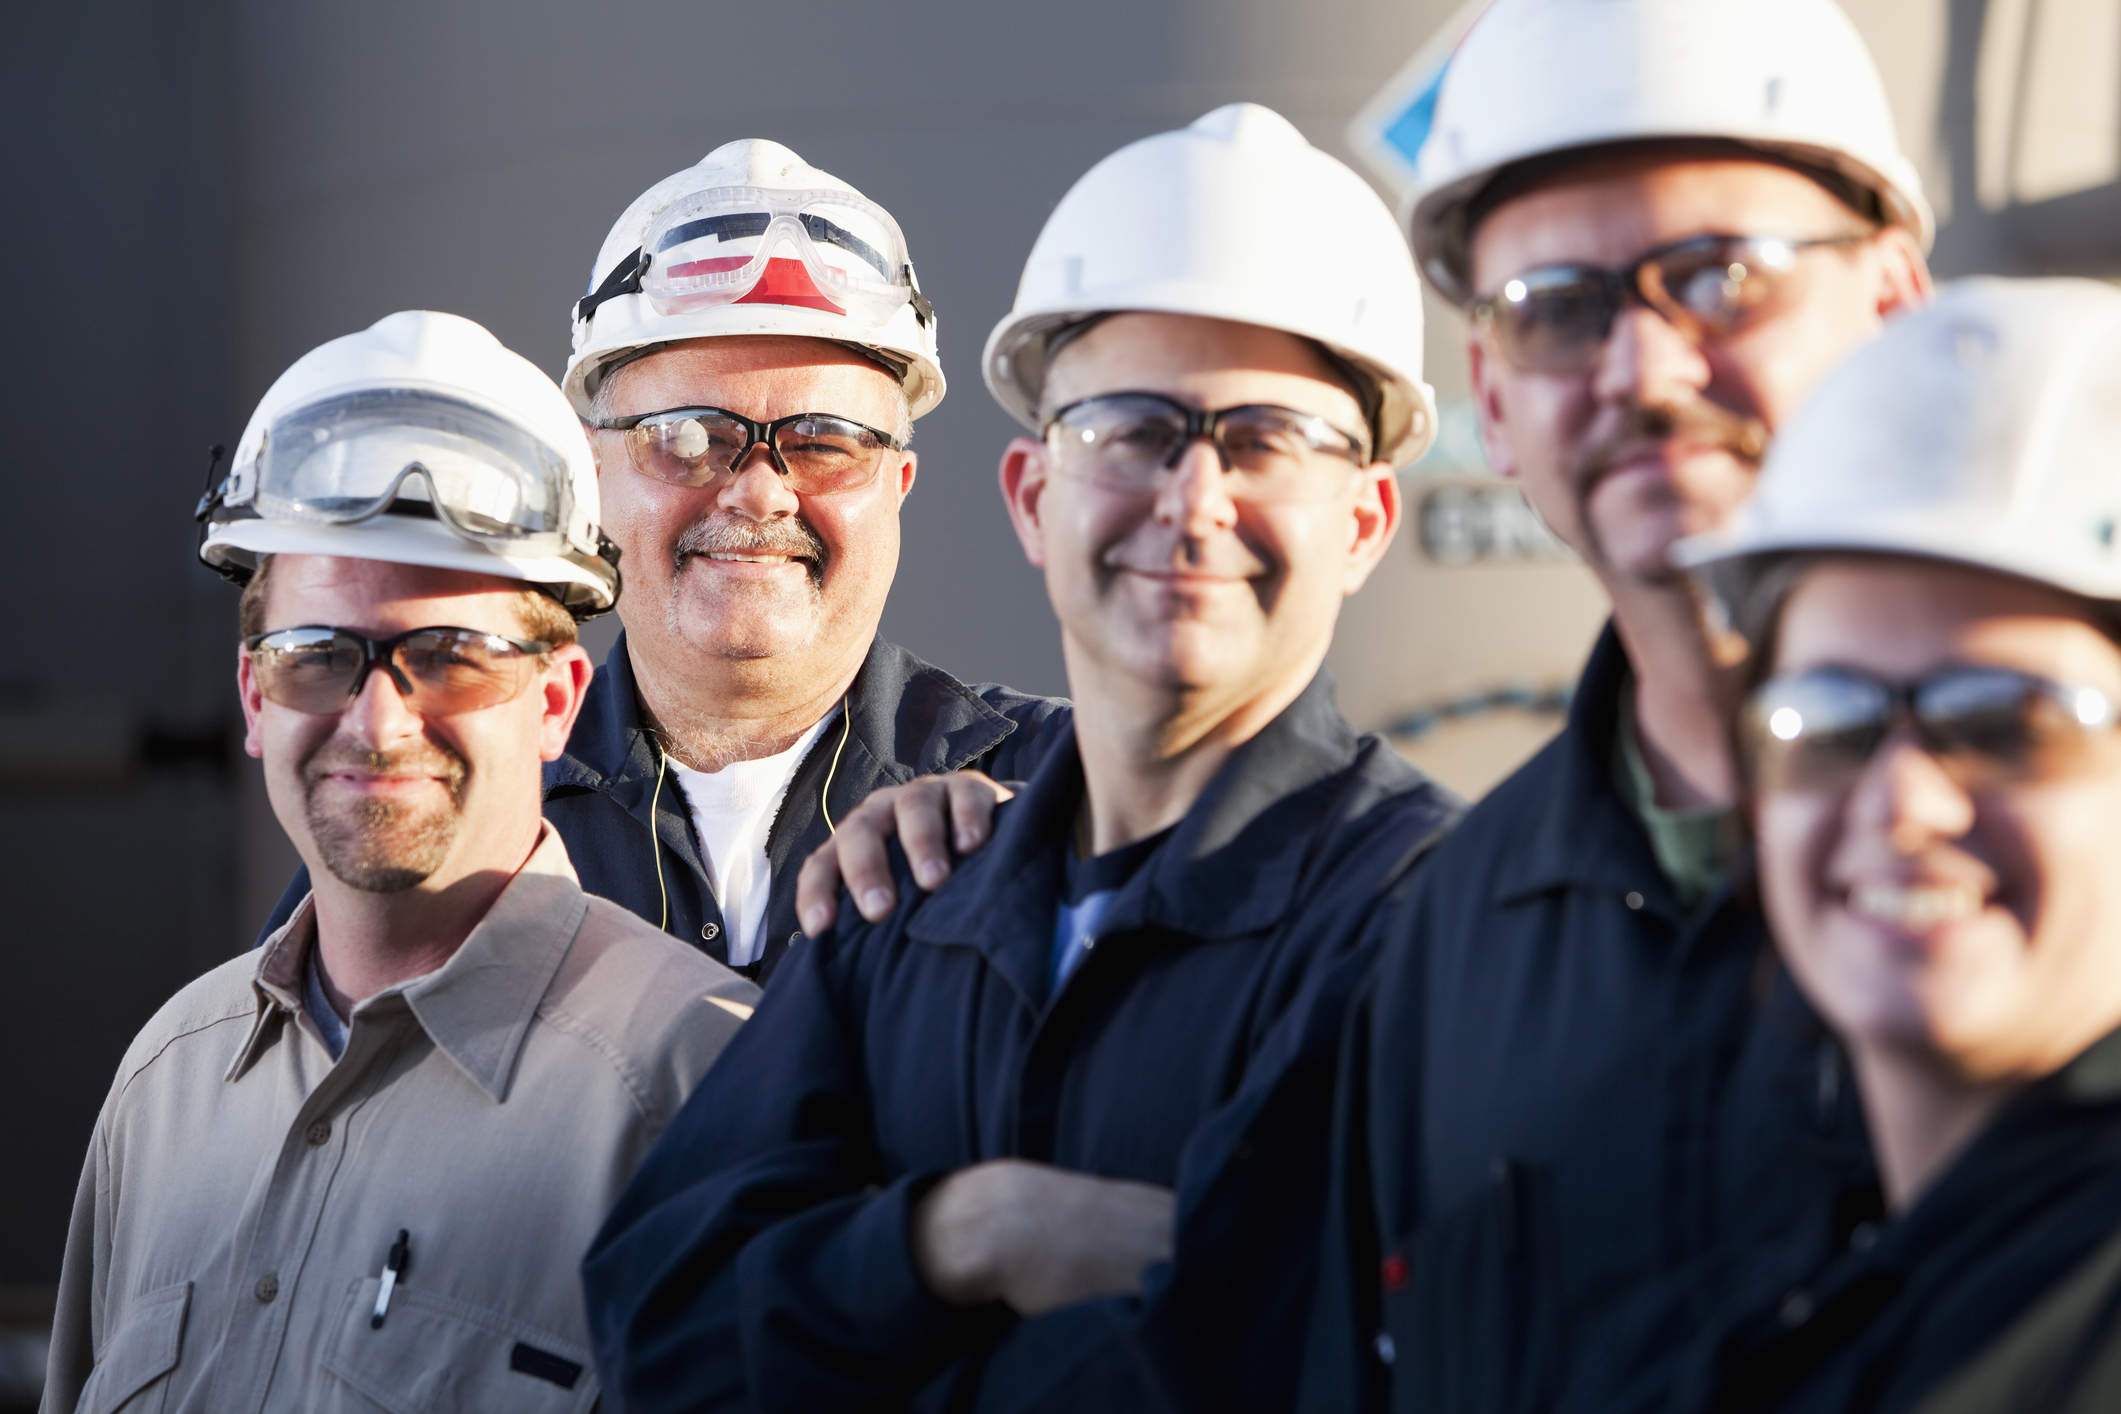 Close up of a group of five industrial workers standing in front of a storage tank. They are wearing white hardhats, safety glasses and dark blue or tan uniforms. There are four men and one woman standing and smiling at the camera. The man in the middle has his arms folded. The focus is on the man in the back, 2nd from the left.